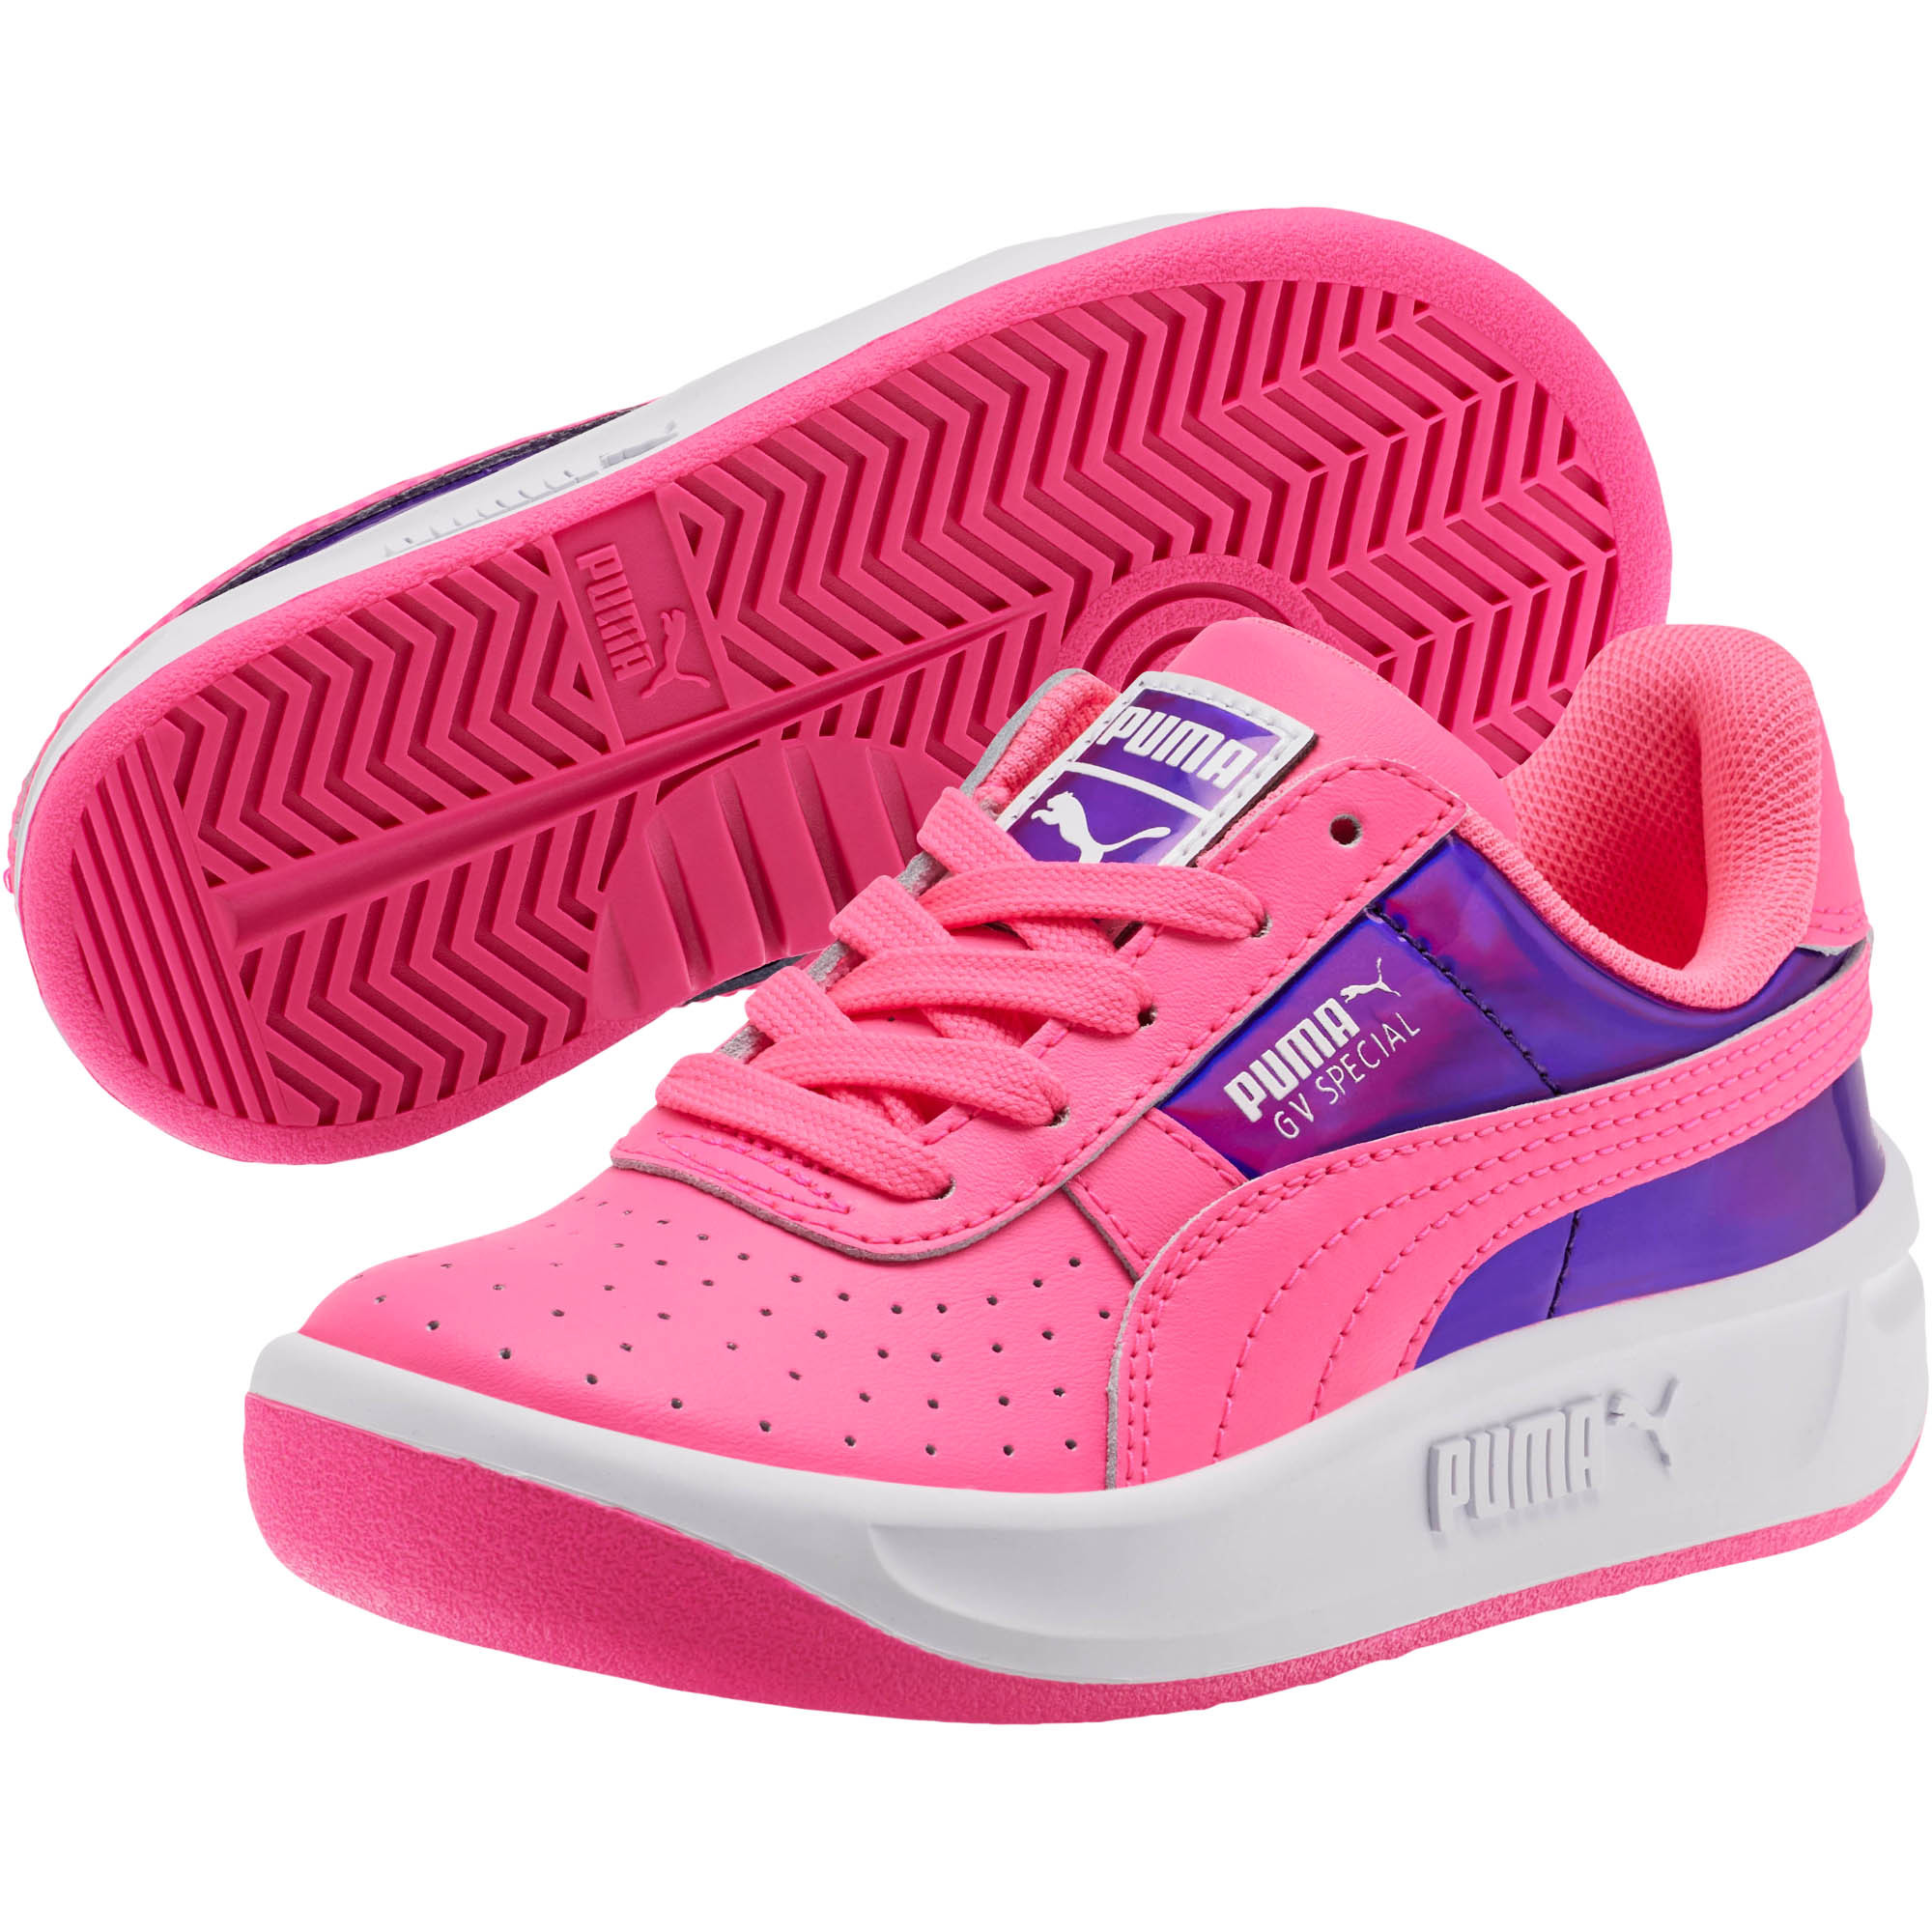 new product 5e7e1 897e2 Details about PUMA GV Special Mirror Metal Little Kids' Shoes Kids Shoe Kids